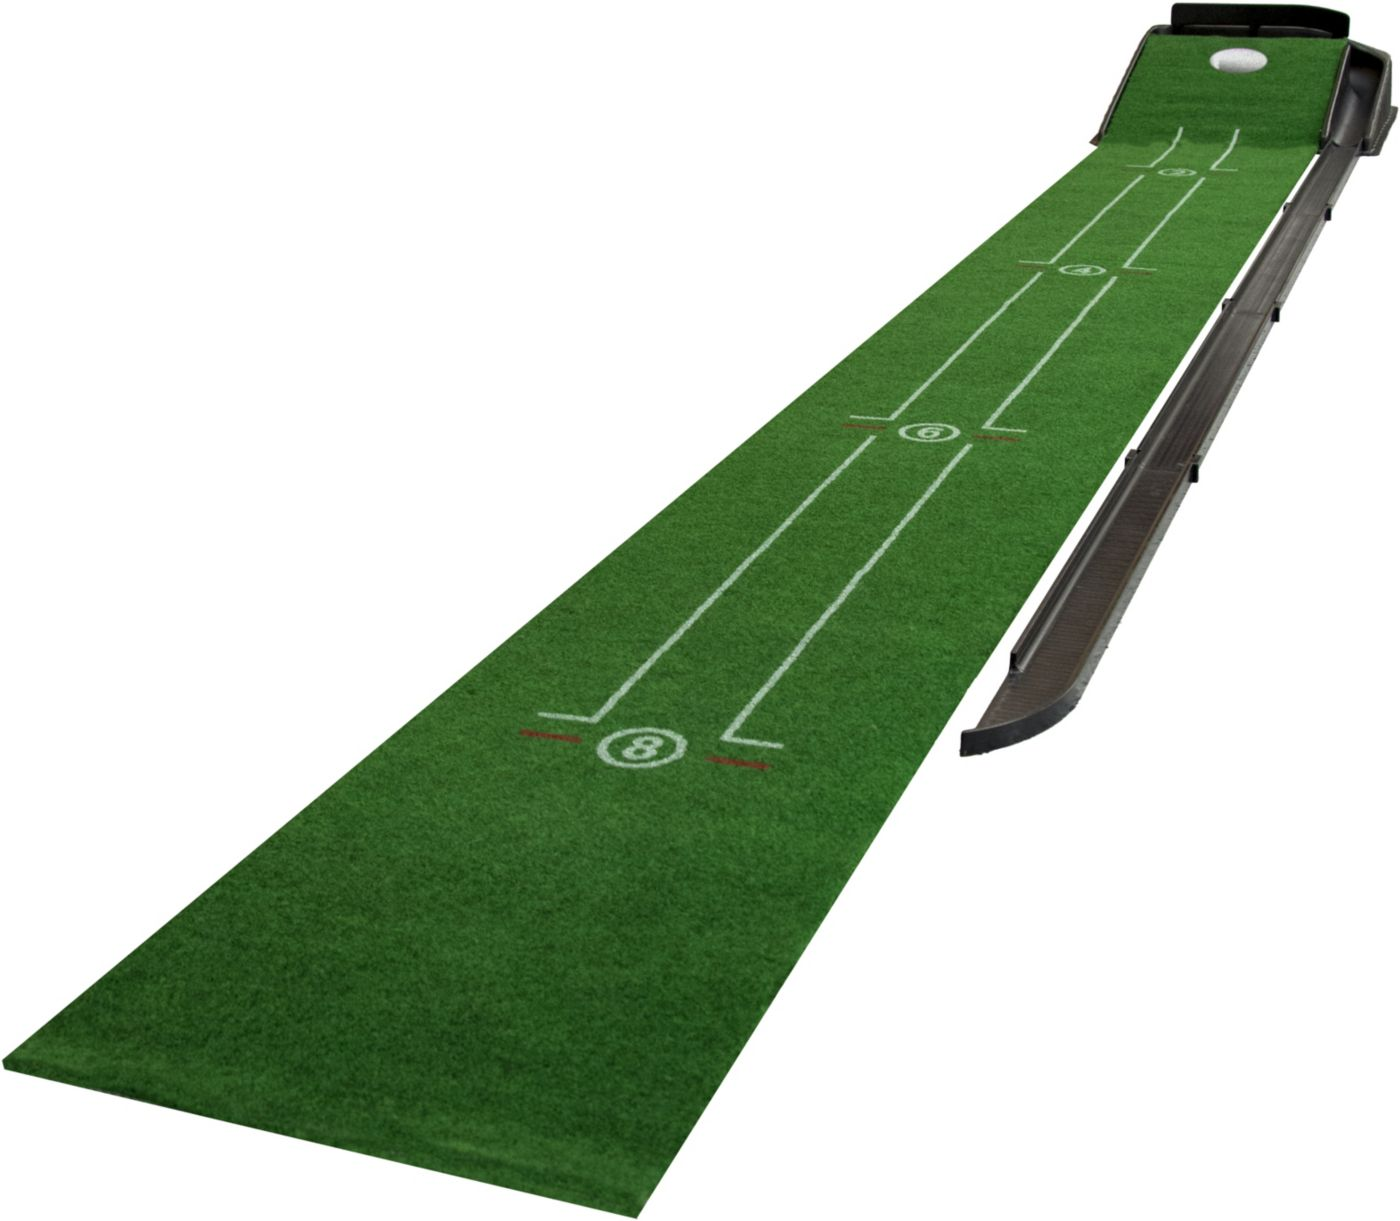 Maxfli 9' x 12' Automatic Putting Mat